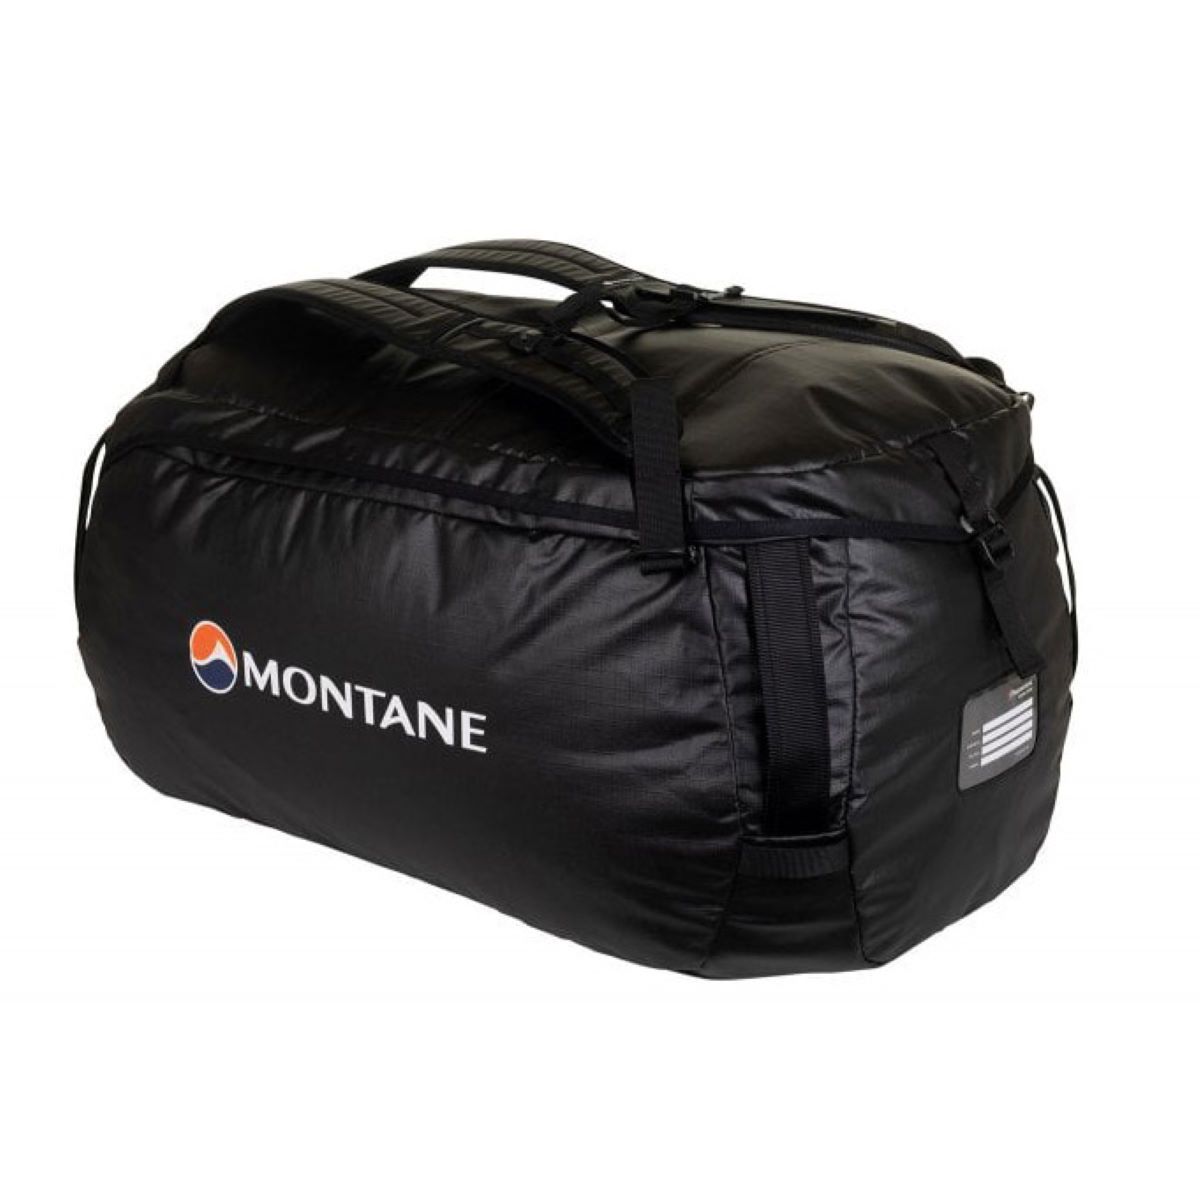 Montane Transition 60 Duffle Bag - One Size Black 2  Transition Bags